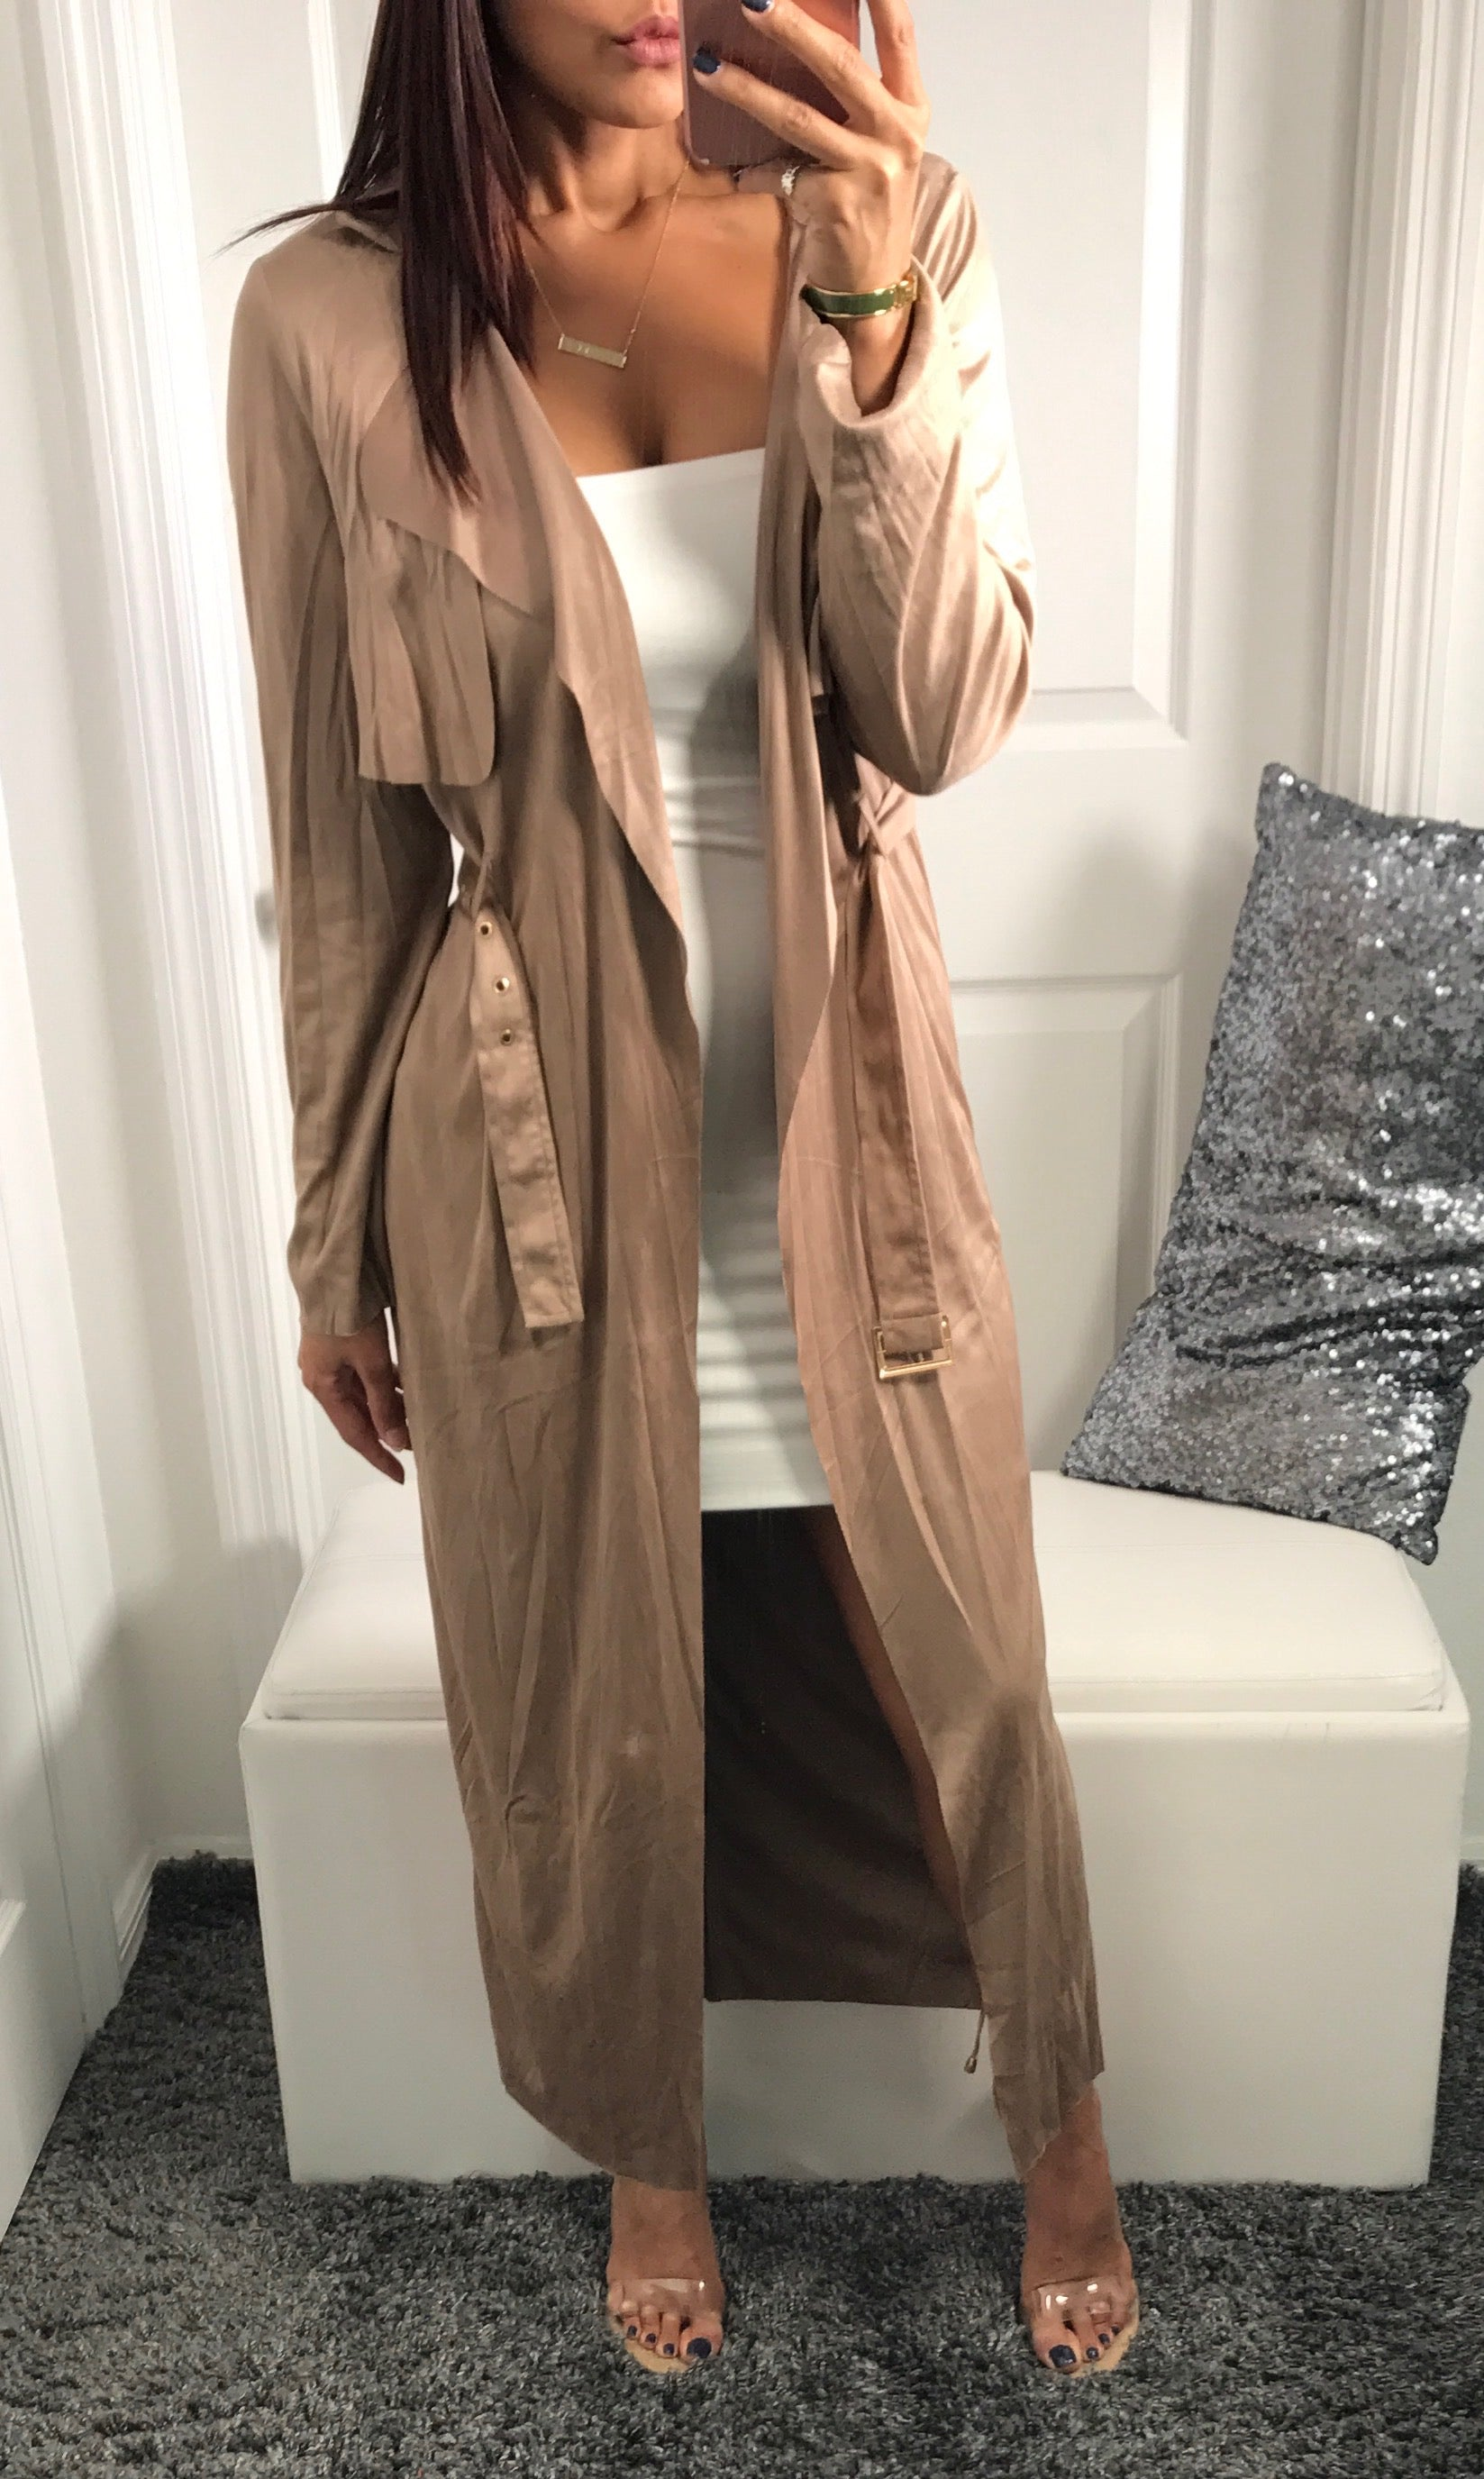 Krizia Coat - Tan Jacket - Dusters by Halos Boutique